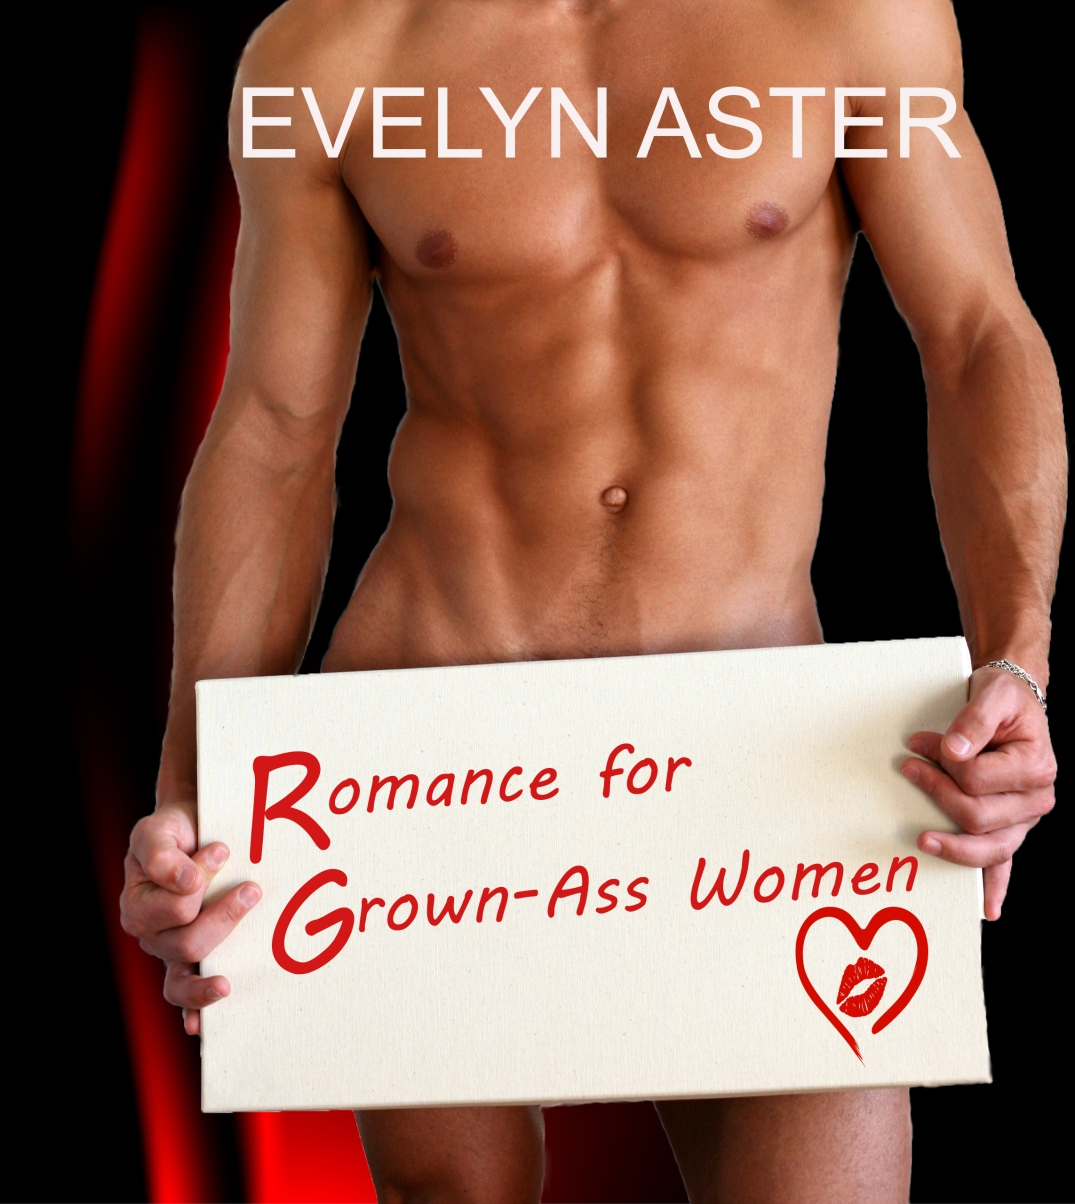 evelyn-aster